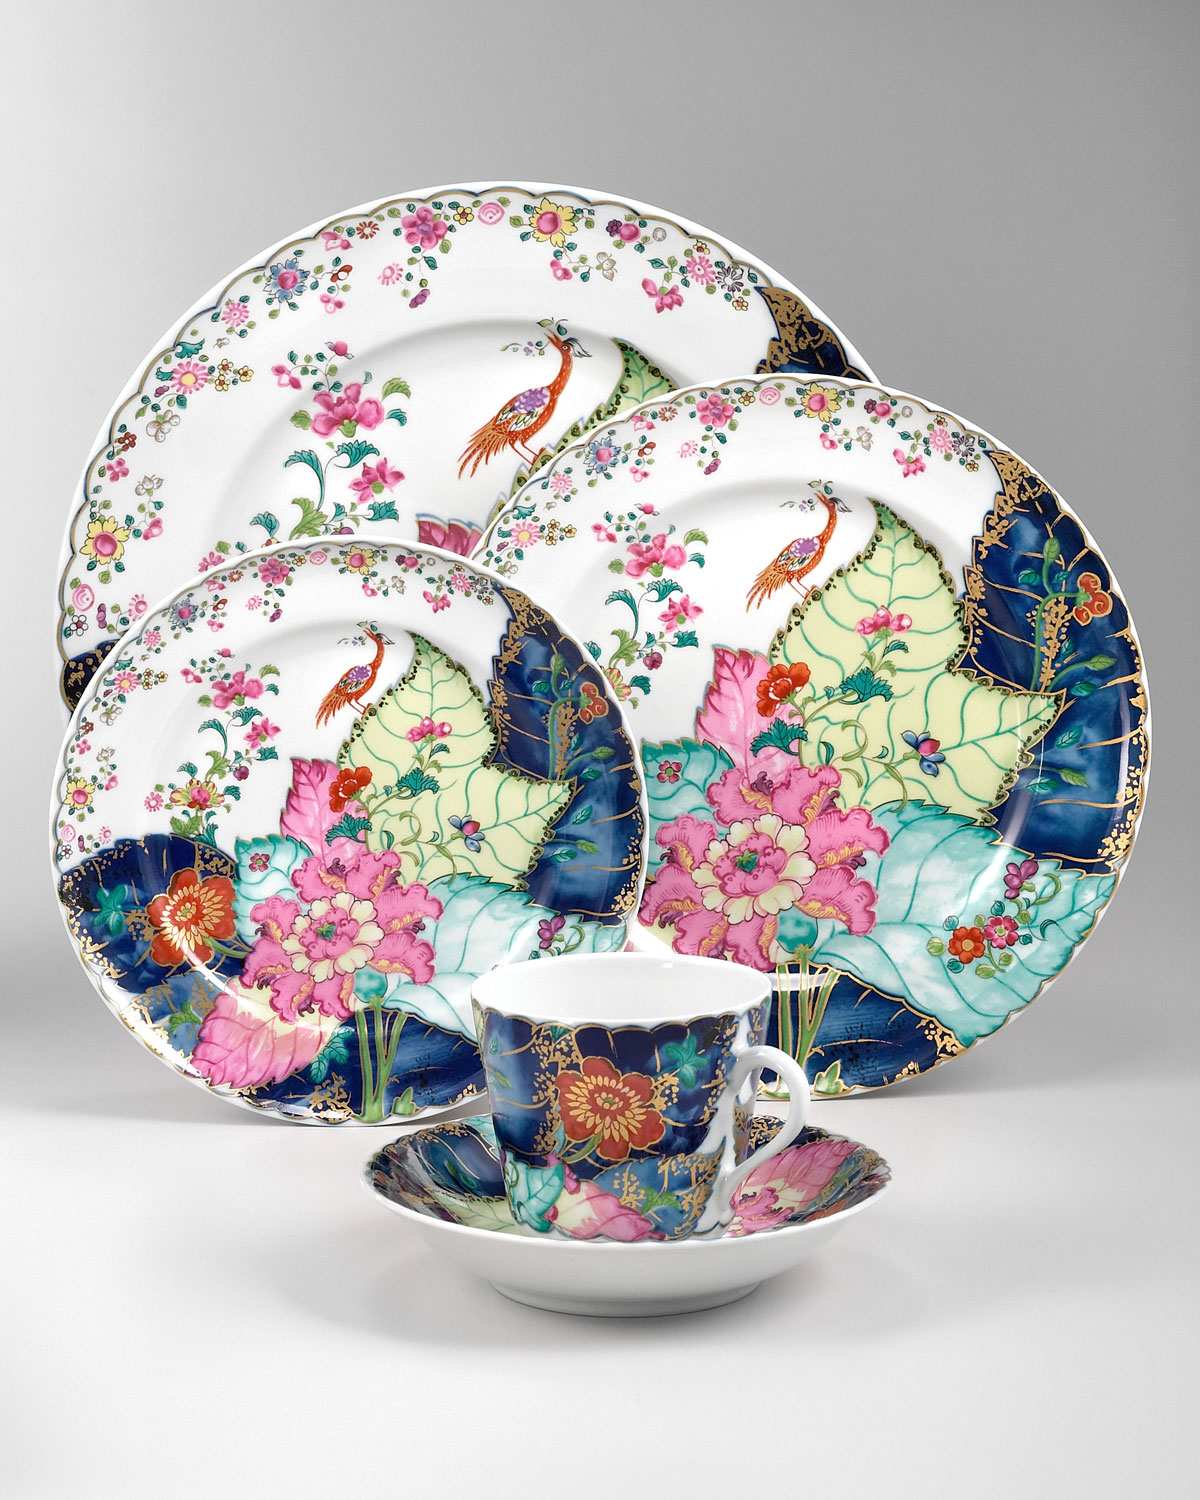 sc 1 st  Neiman Marcus & Mottahedeh Tobacco Leaf Dinnerware \u0026 Matching Items | Neiman Marcus